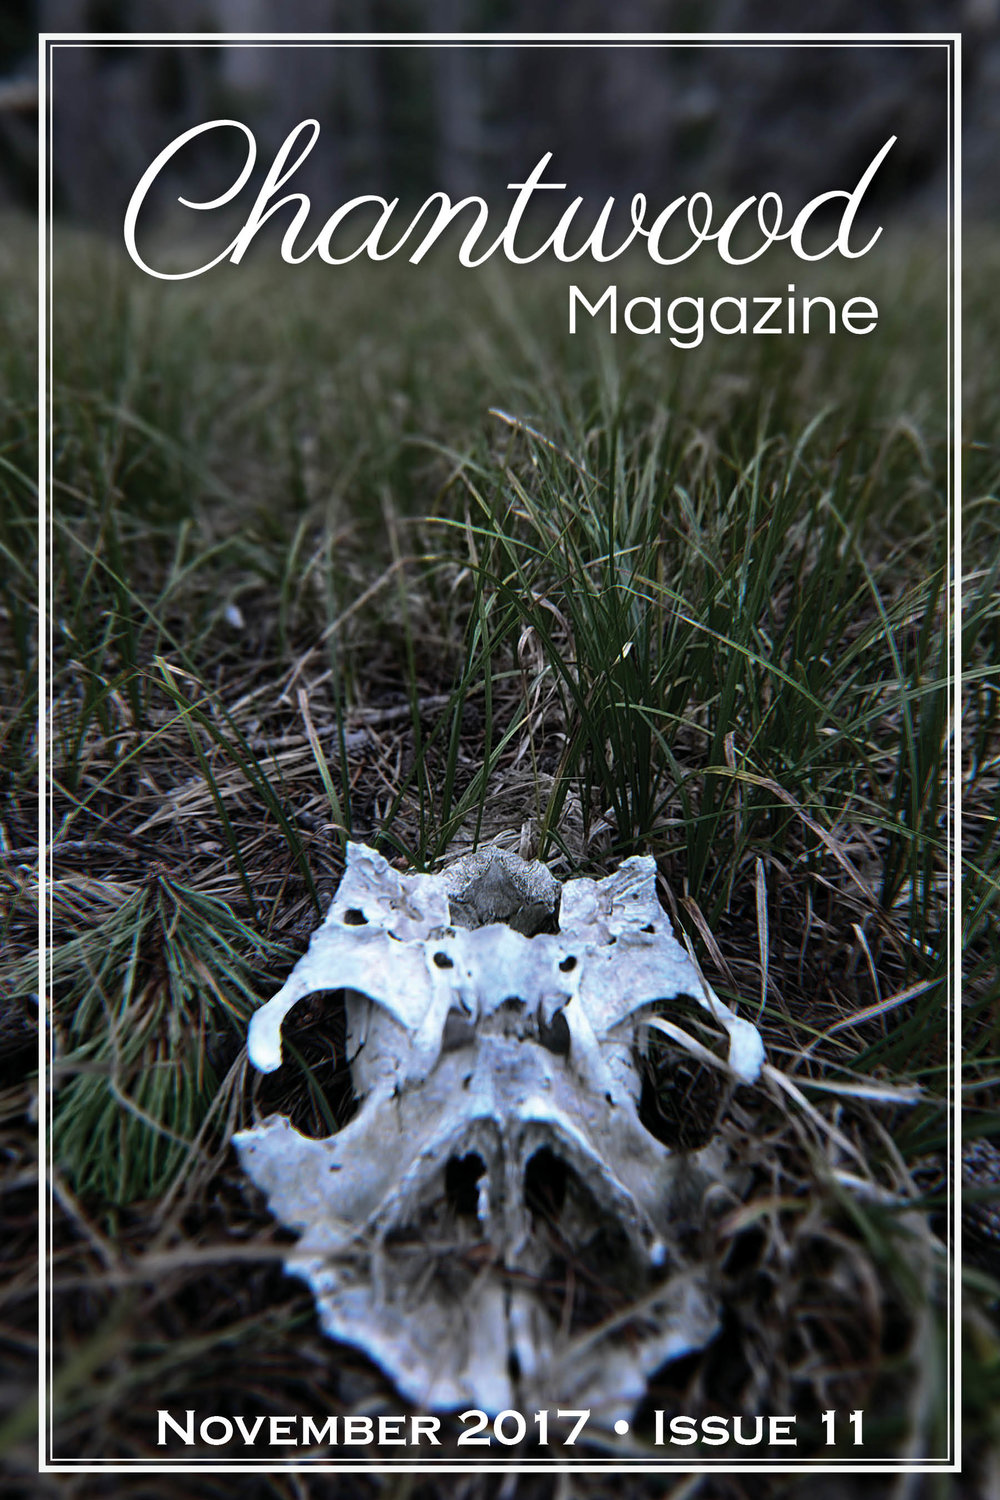 chantwood cover november 2017.jpg